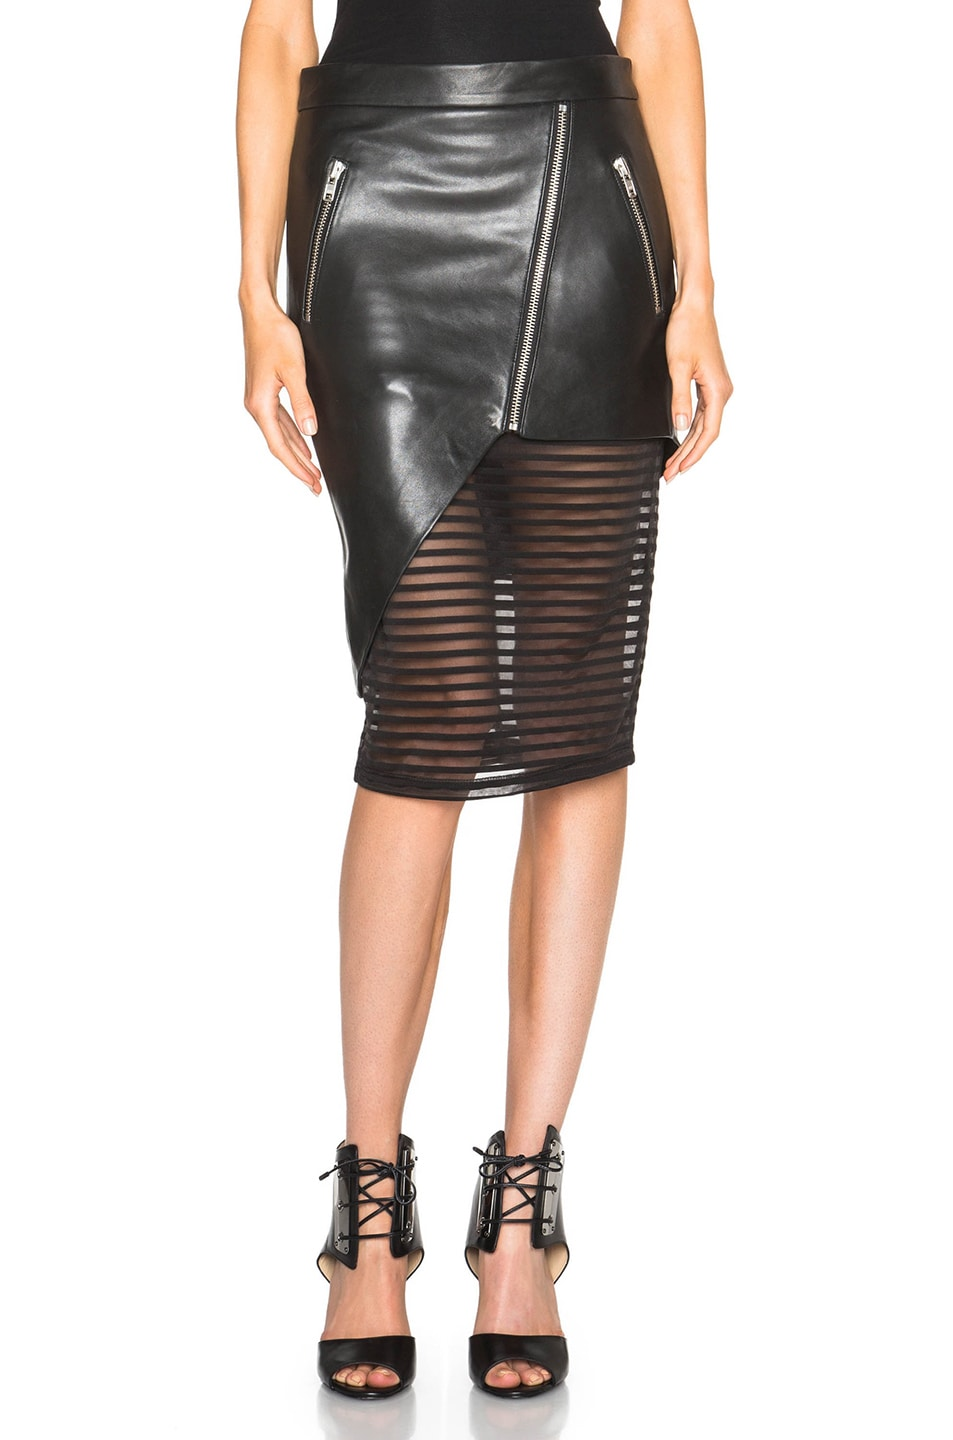 55dadaaf06 Image 1 of Michelle Mason Leather Skirt in Black